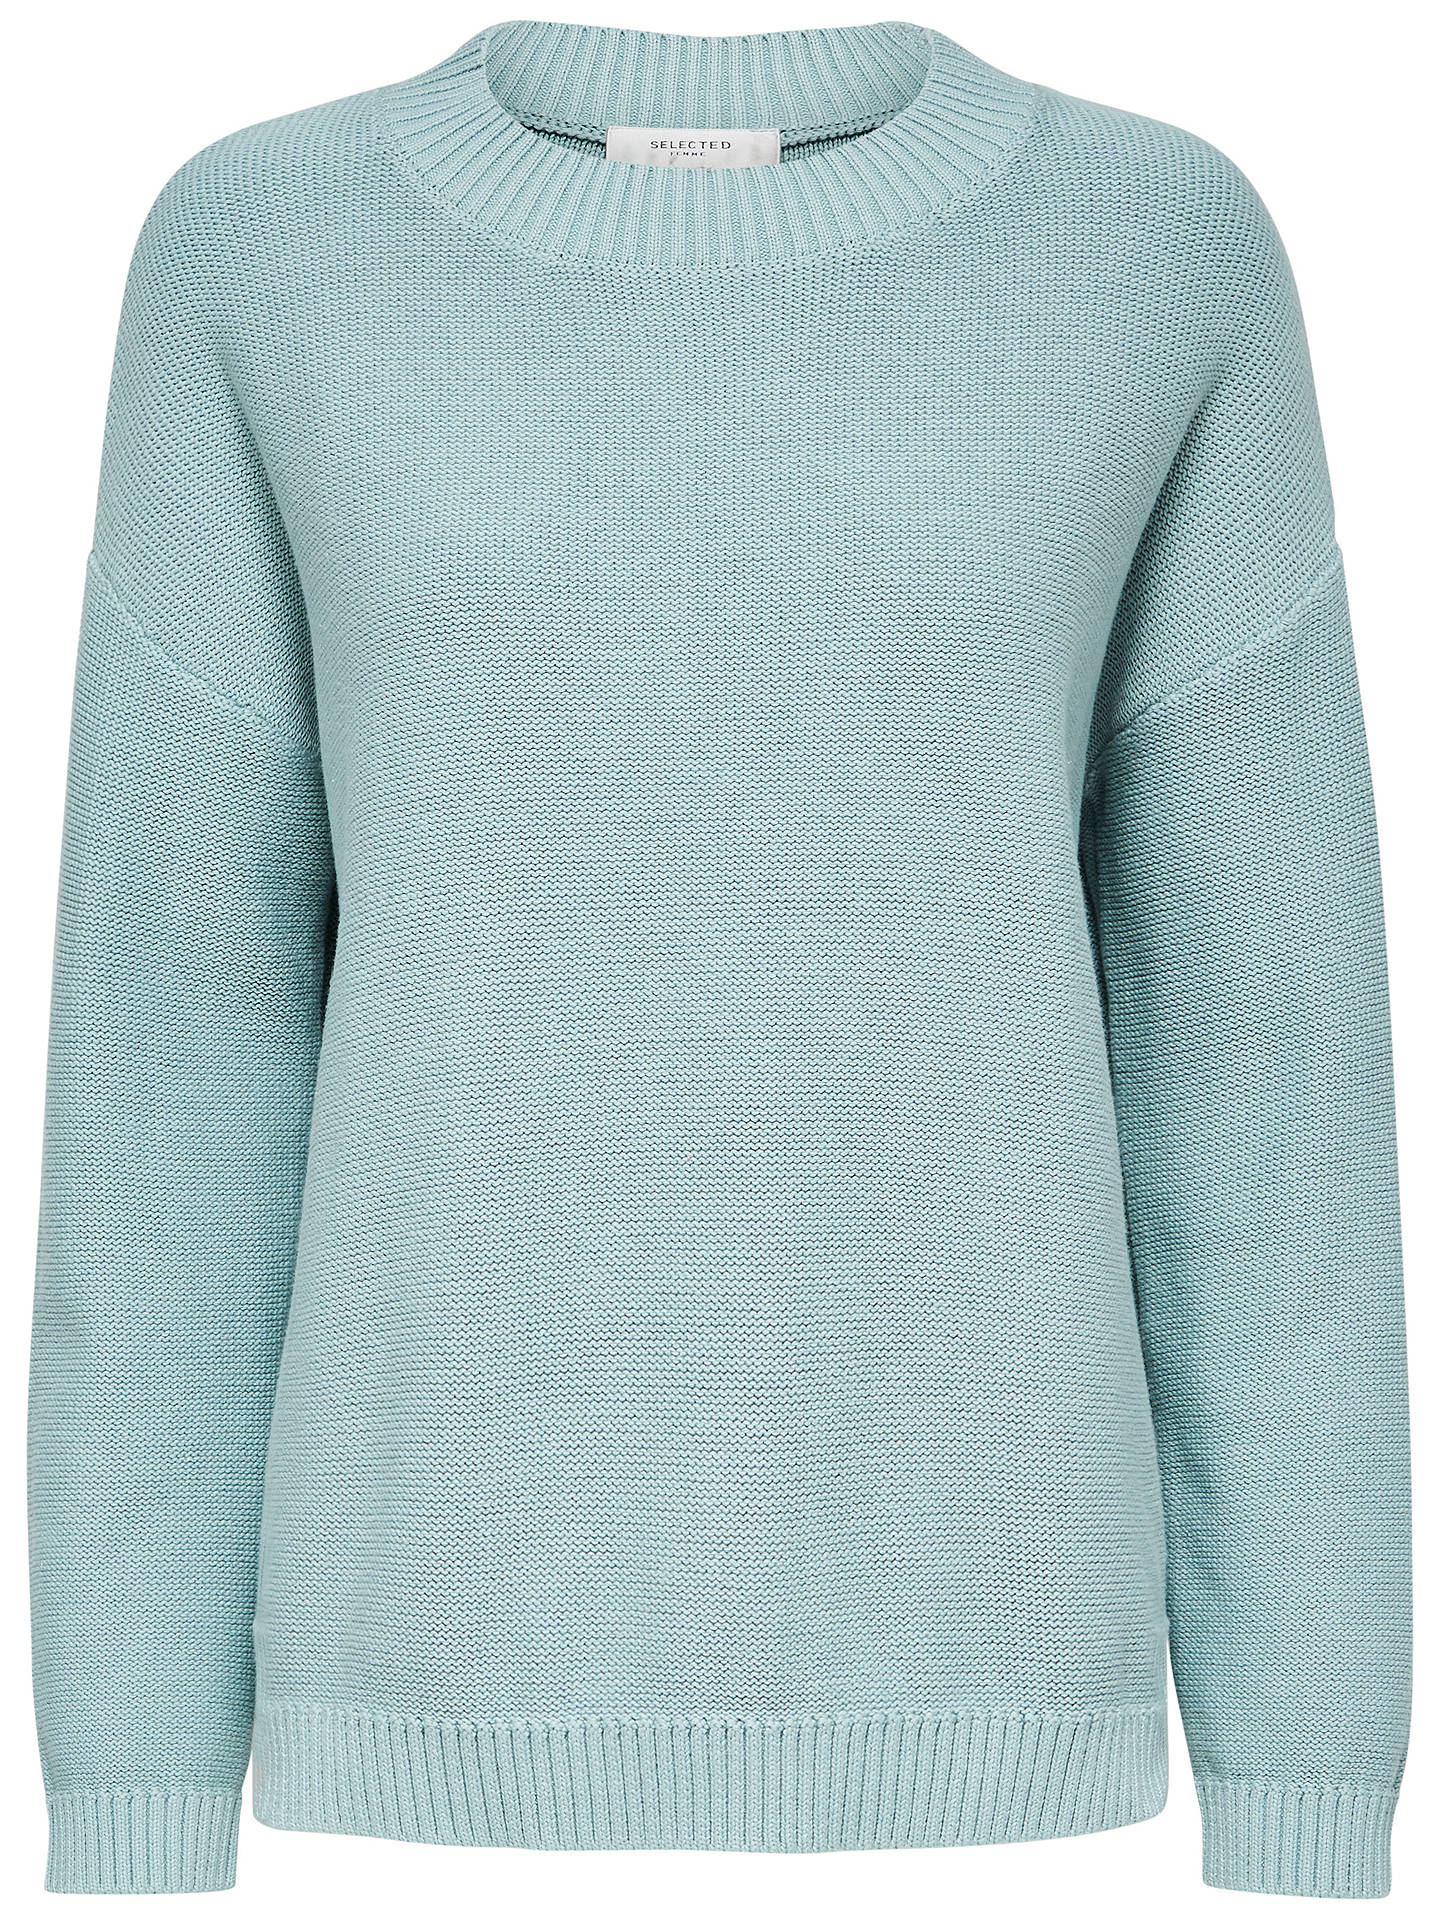 Buy Selected Femme Margarite Jumper, Grey Mist, M Online at johnlewis.com